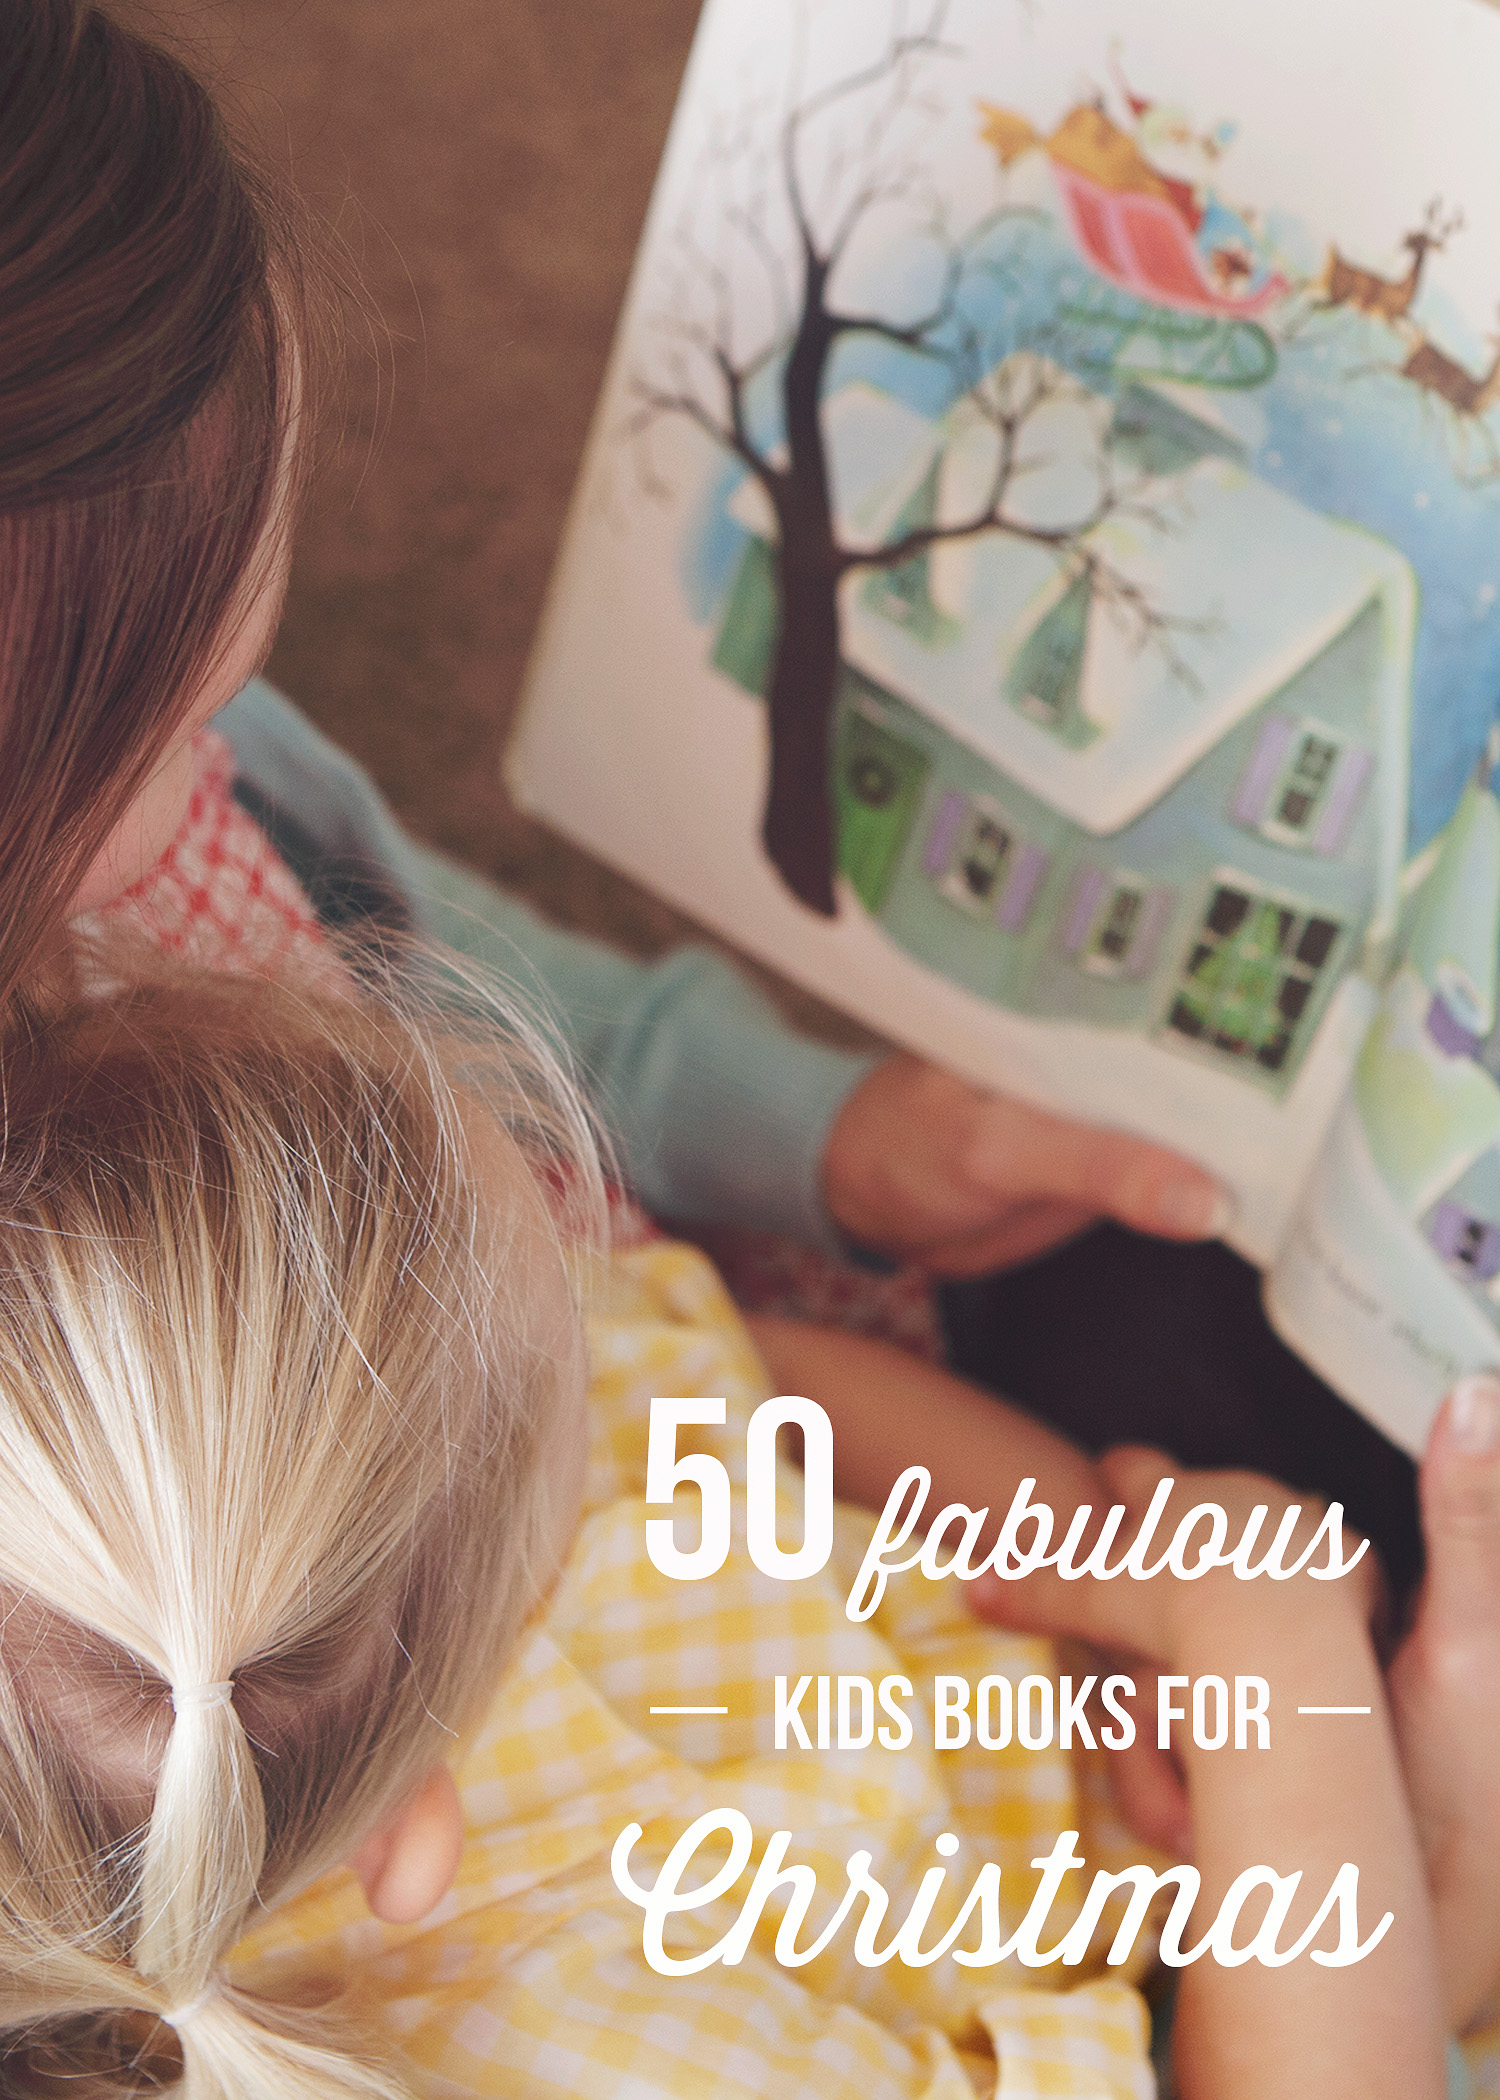 50 Fabulous Christmas Books for Kids